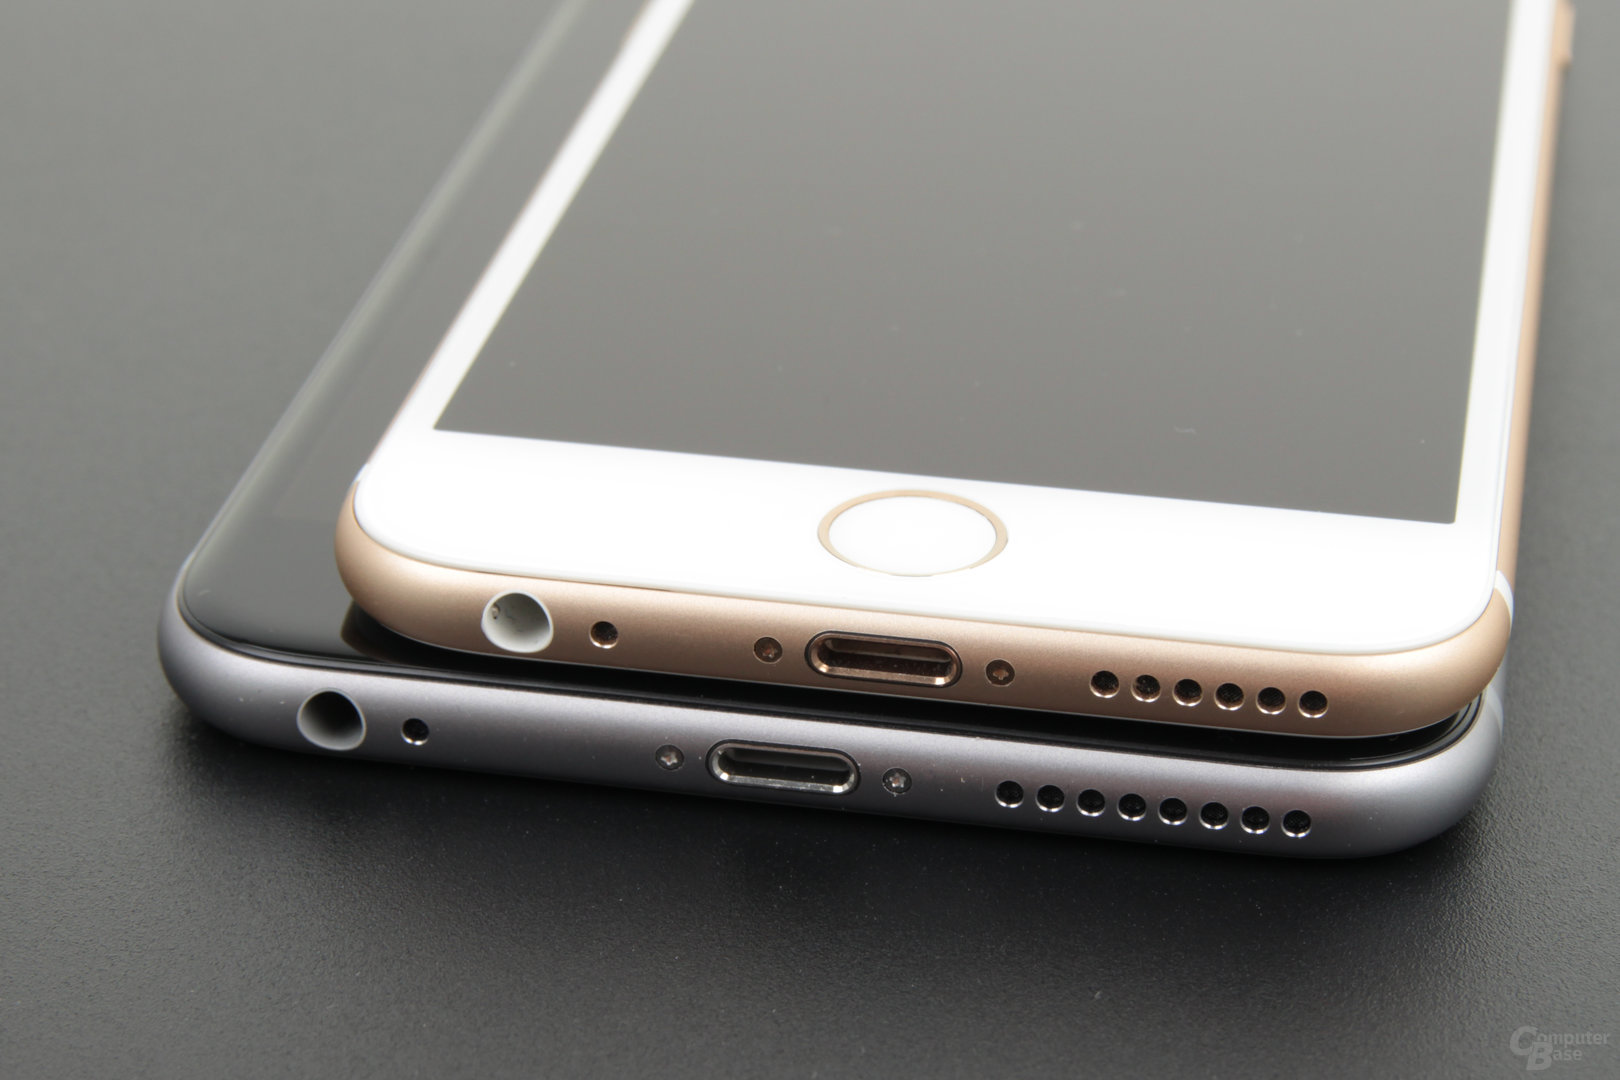 Apple iPhone 6 (oben) und iPhone 6s Plus (unten)